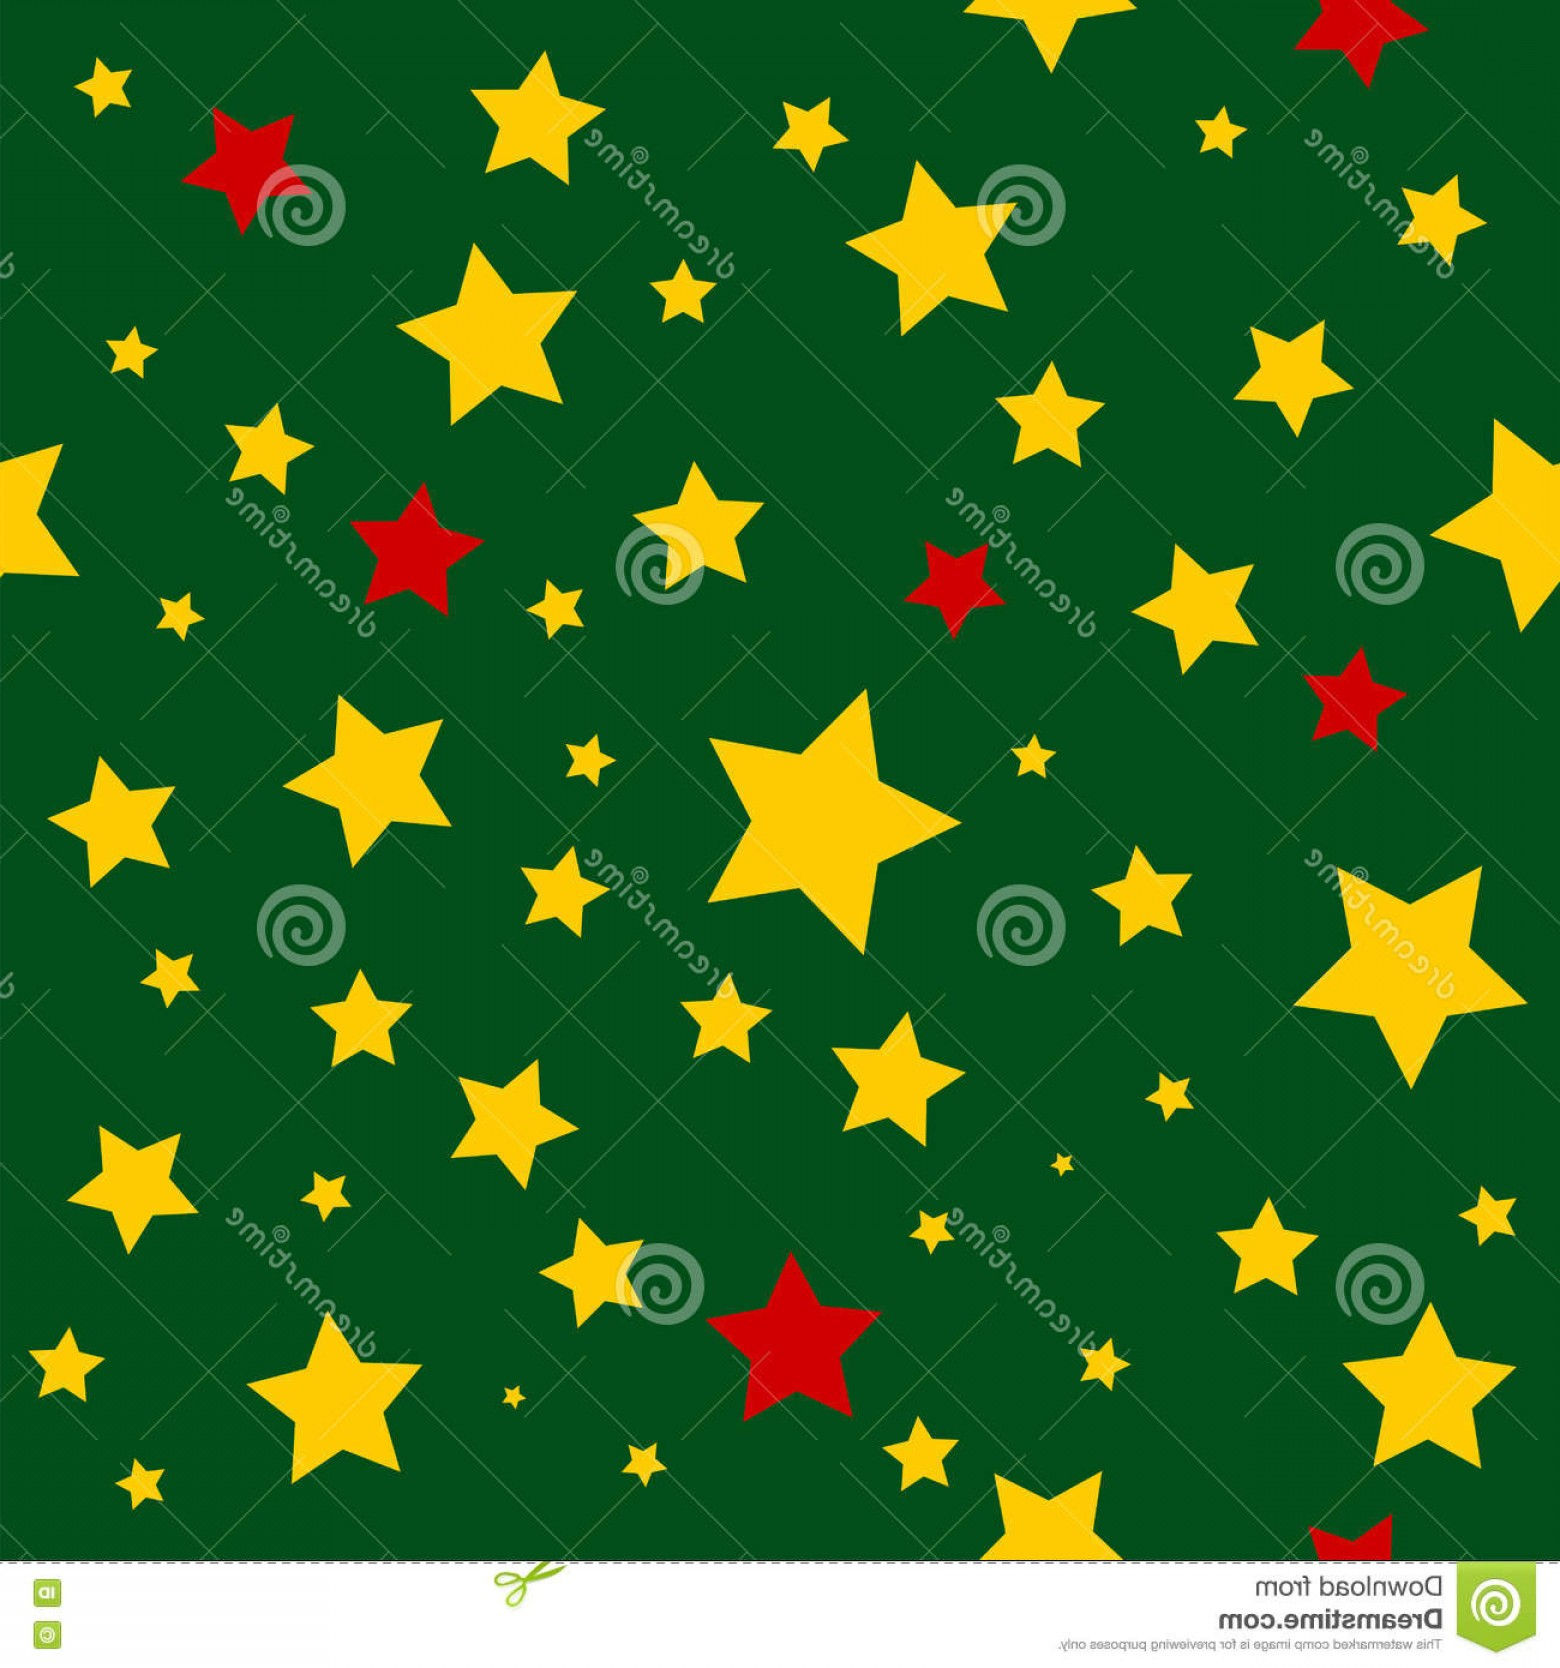 Stars Yellow Christmas Vector: Stock Illustration Yellow Red Stars Green Christmas Background Vector Illustration Image